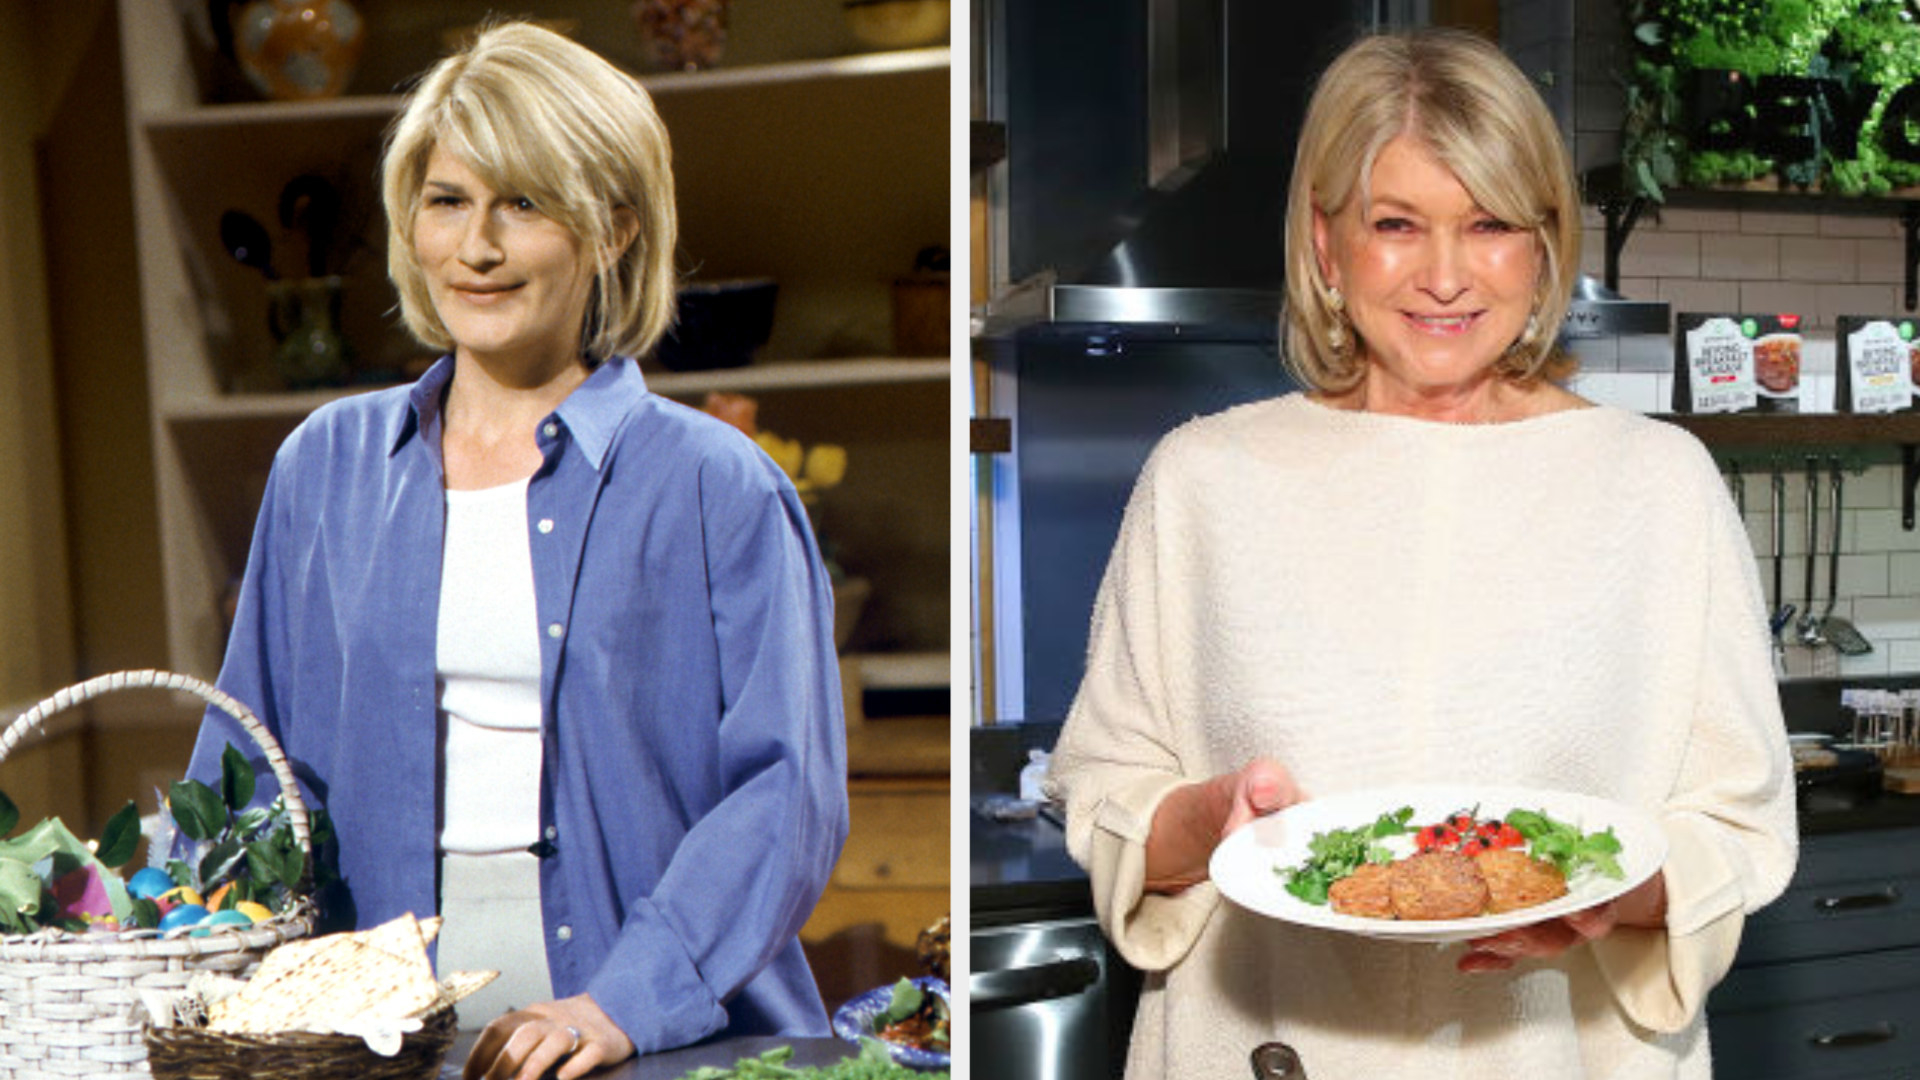 Ana as Martha in the kitchen side by side to Martha in the kitchen